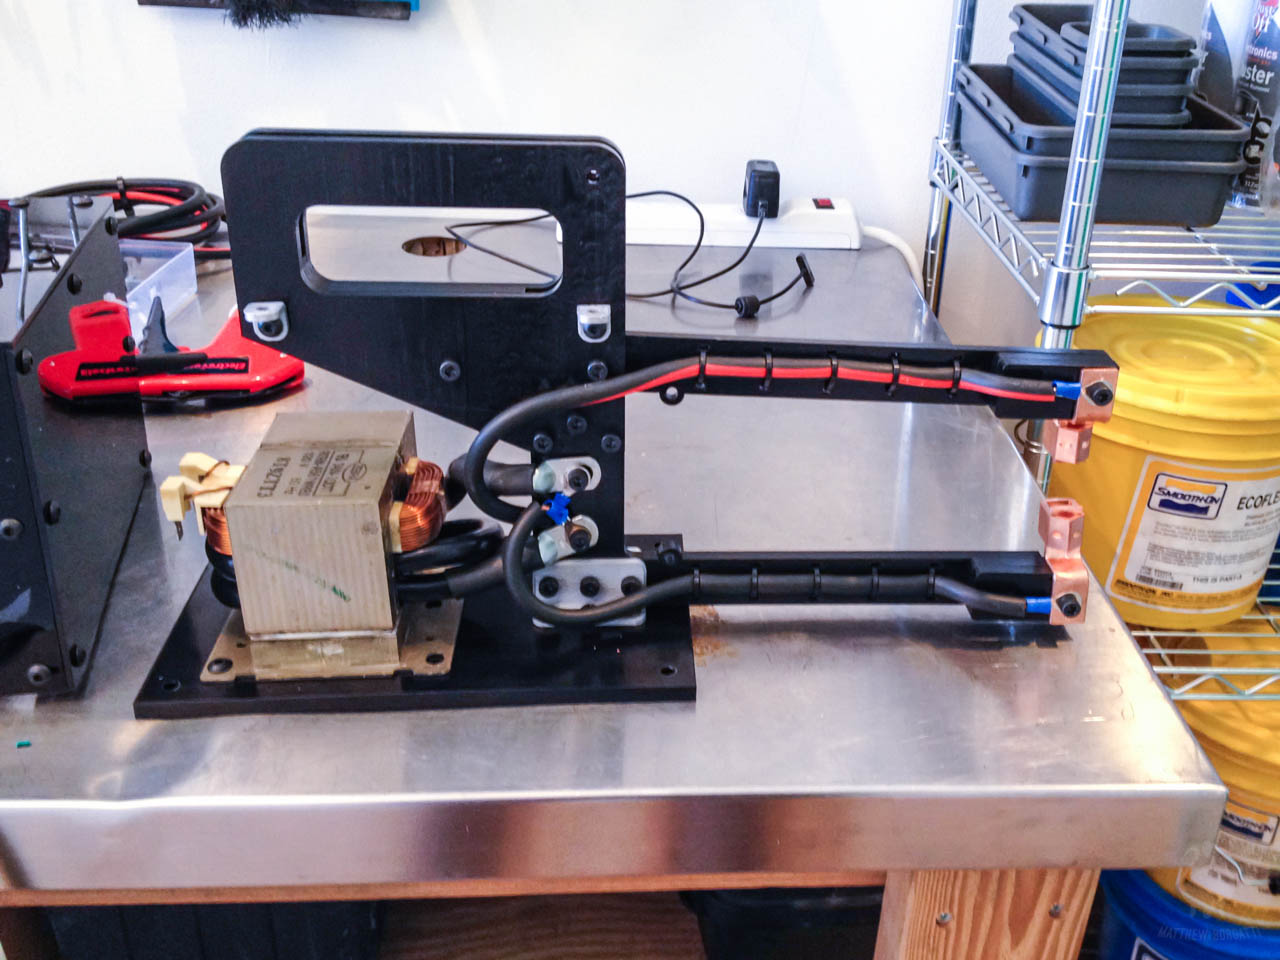 Upcycle a Microwave into a Spot Welder   Make: